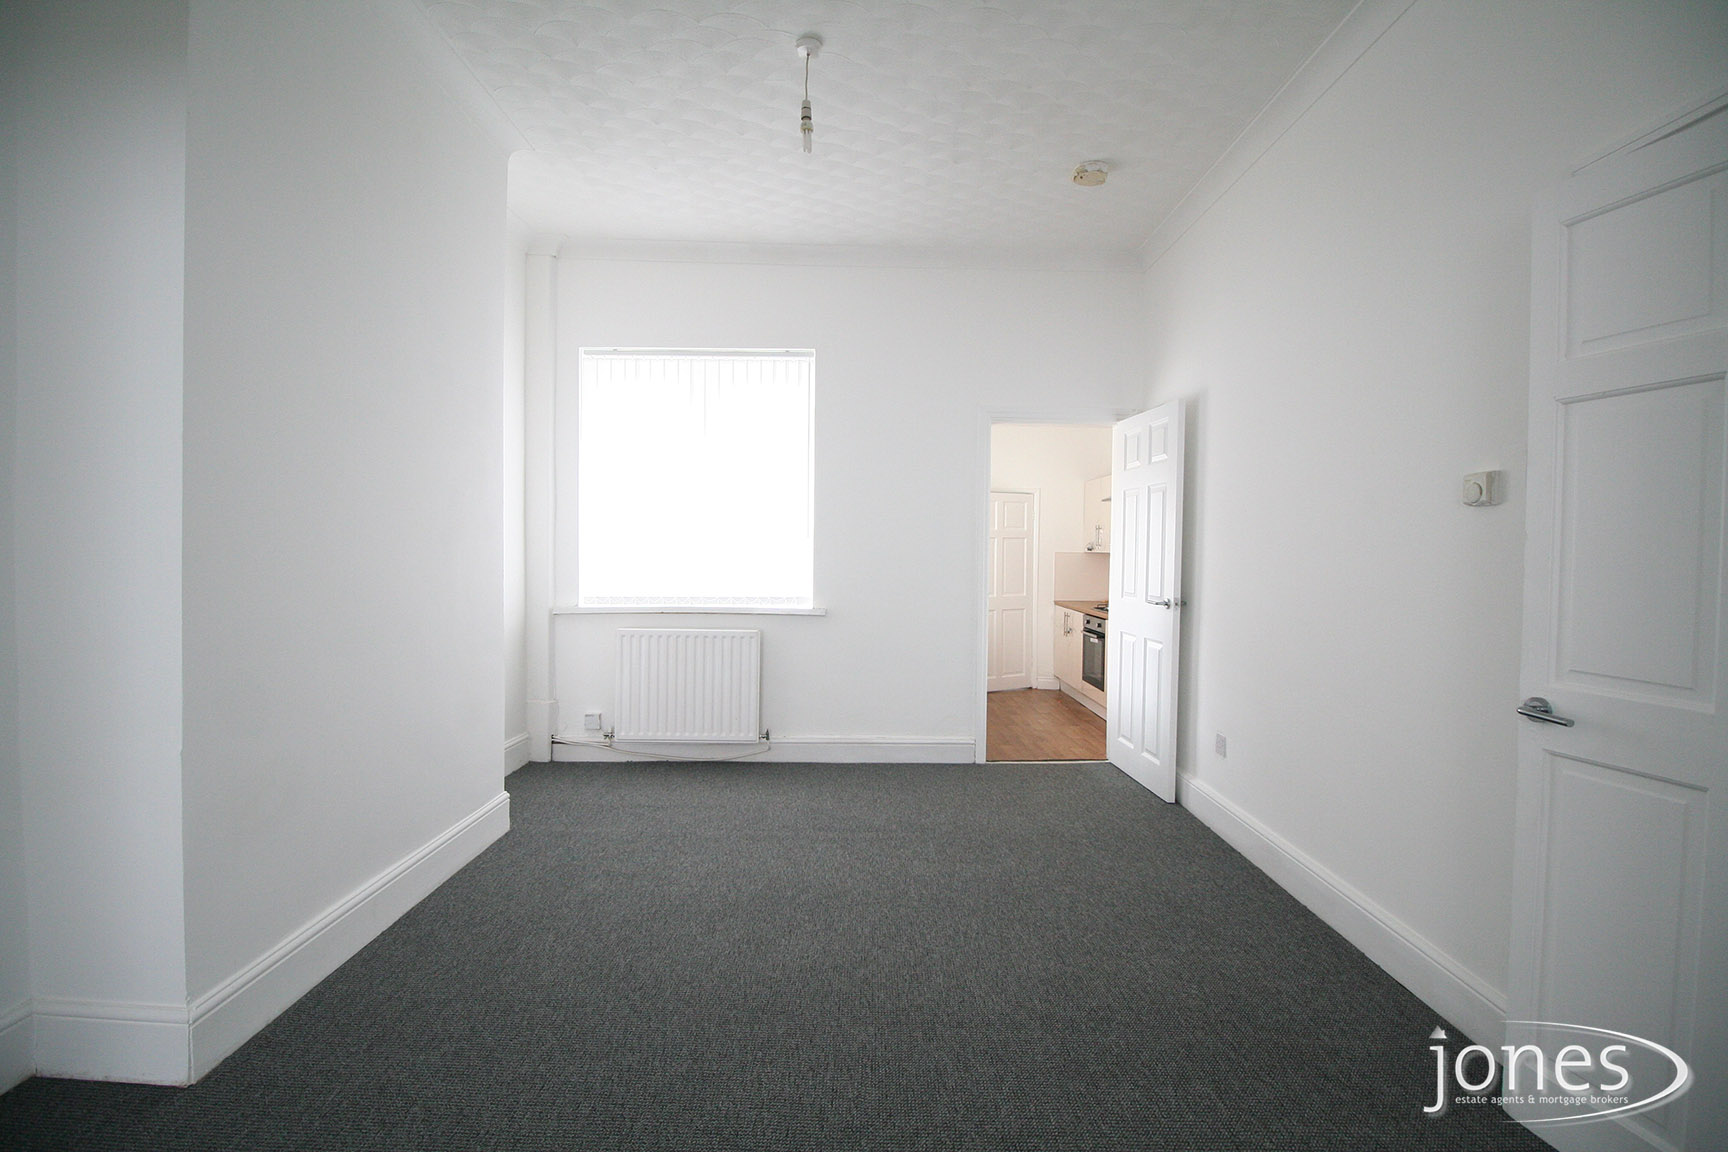 Home for Sale Let - Photo 03 Mansfield Avenue, Thornaby, Stockton on Tees, TS17 7HQ